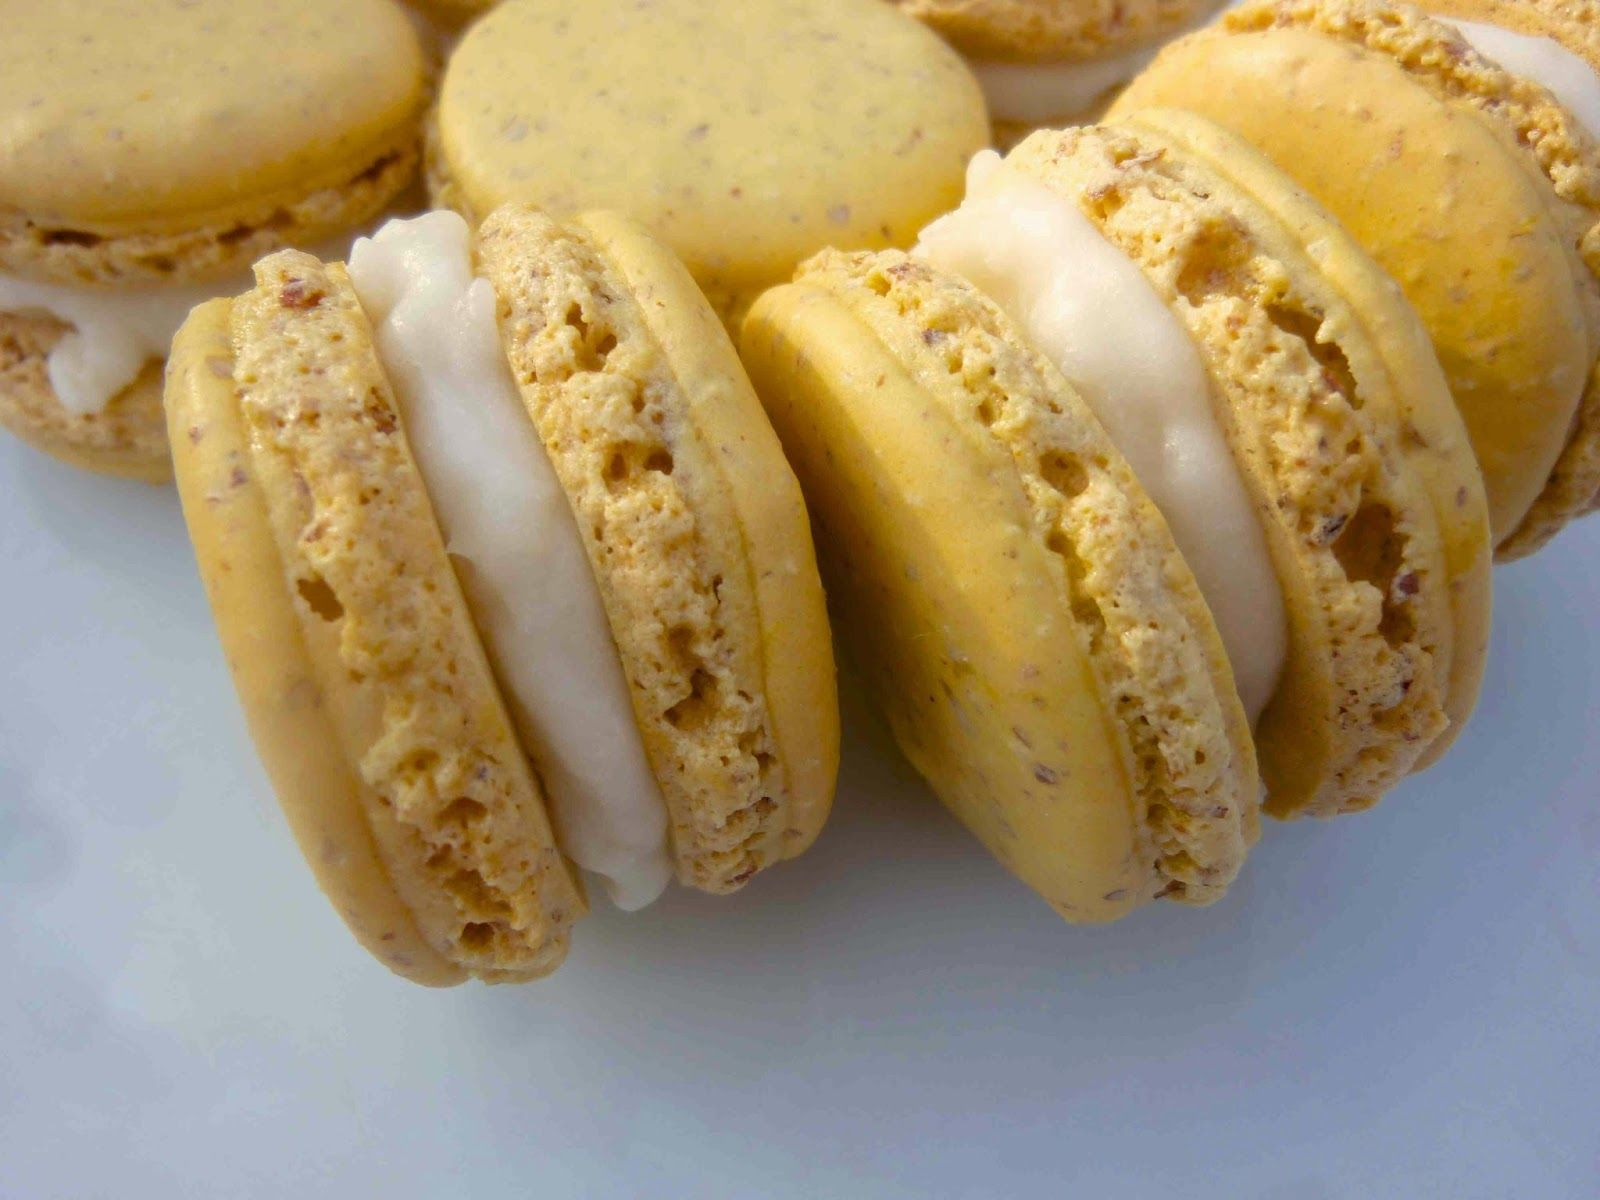 Diary of a Mad Hausfrau: Macaron Monday: Lemon French Macarons with Coconut Filling